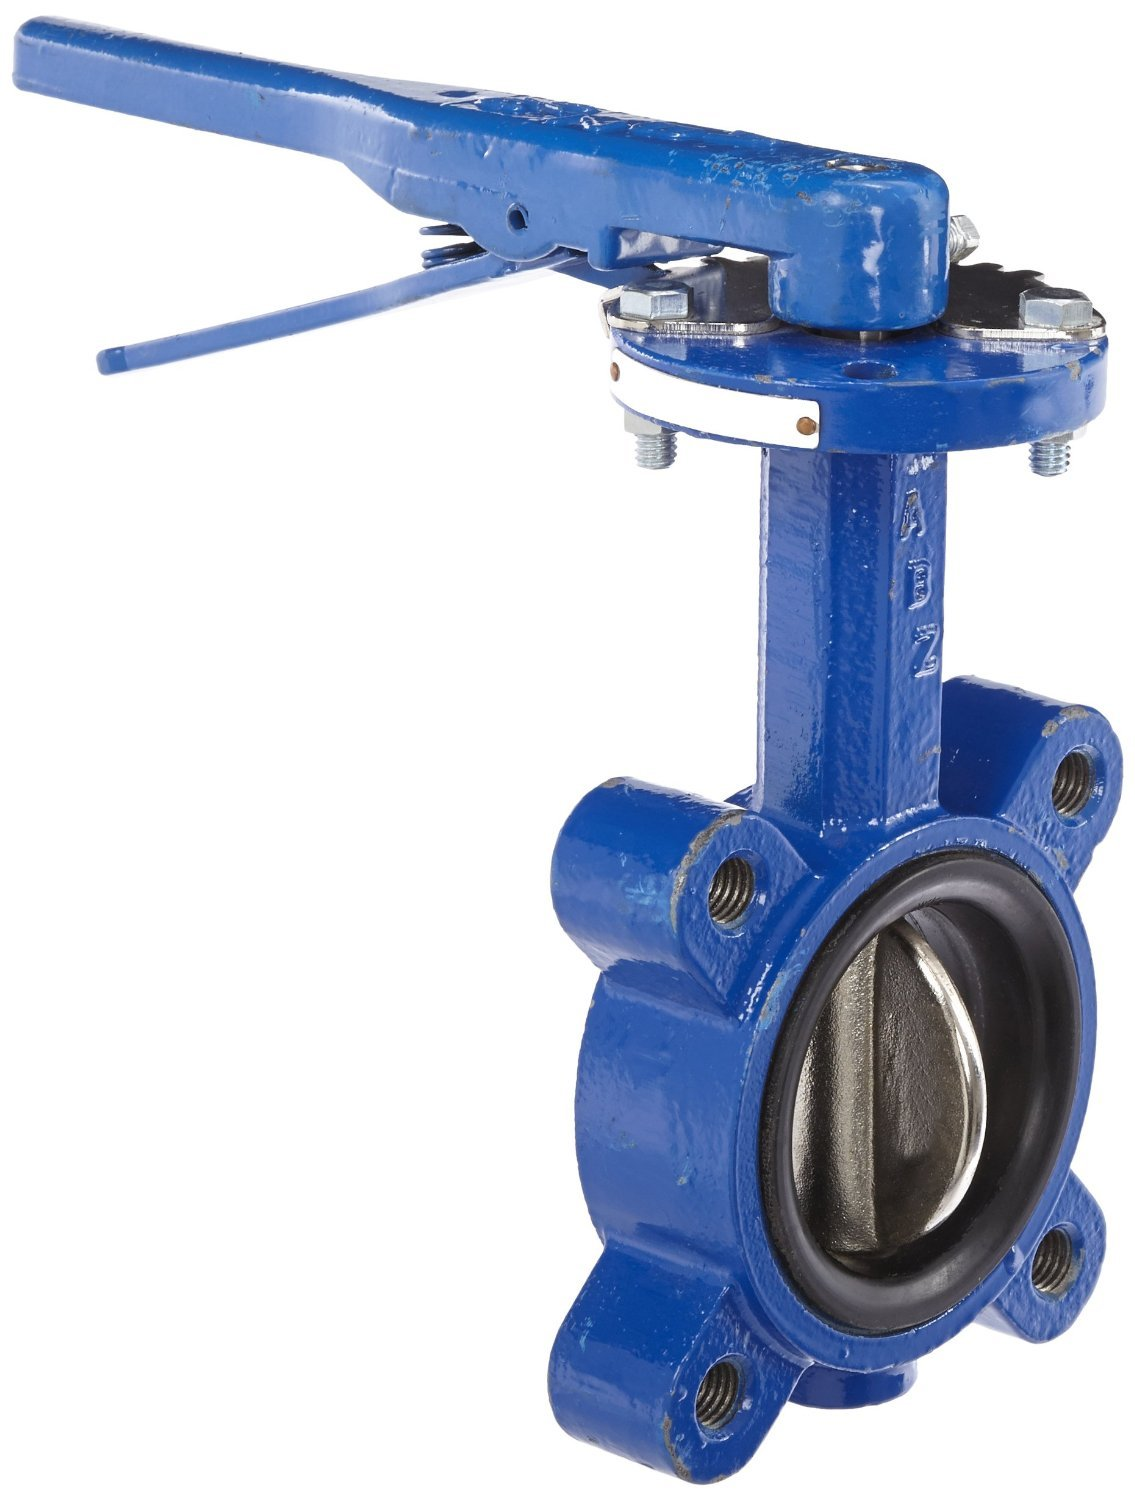 Dixon BFVL300 Ductile Iron Threaded Lug Style Butterfly Valve with Aluminum Bronze Disc and Buna-N liner, 3'' Size, 200 psi Pressure by Dixon Valve & Coupling (Image #1)